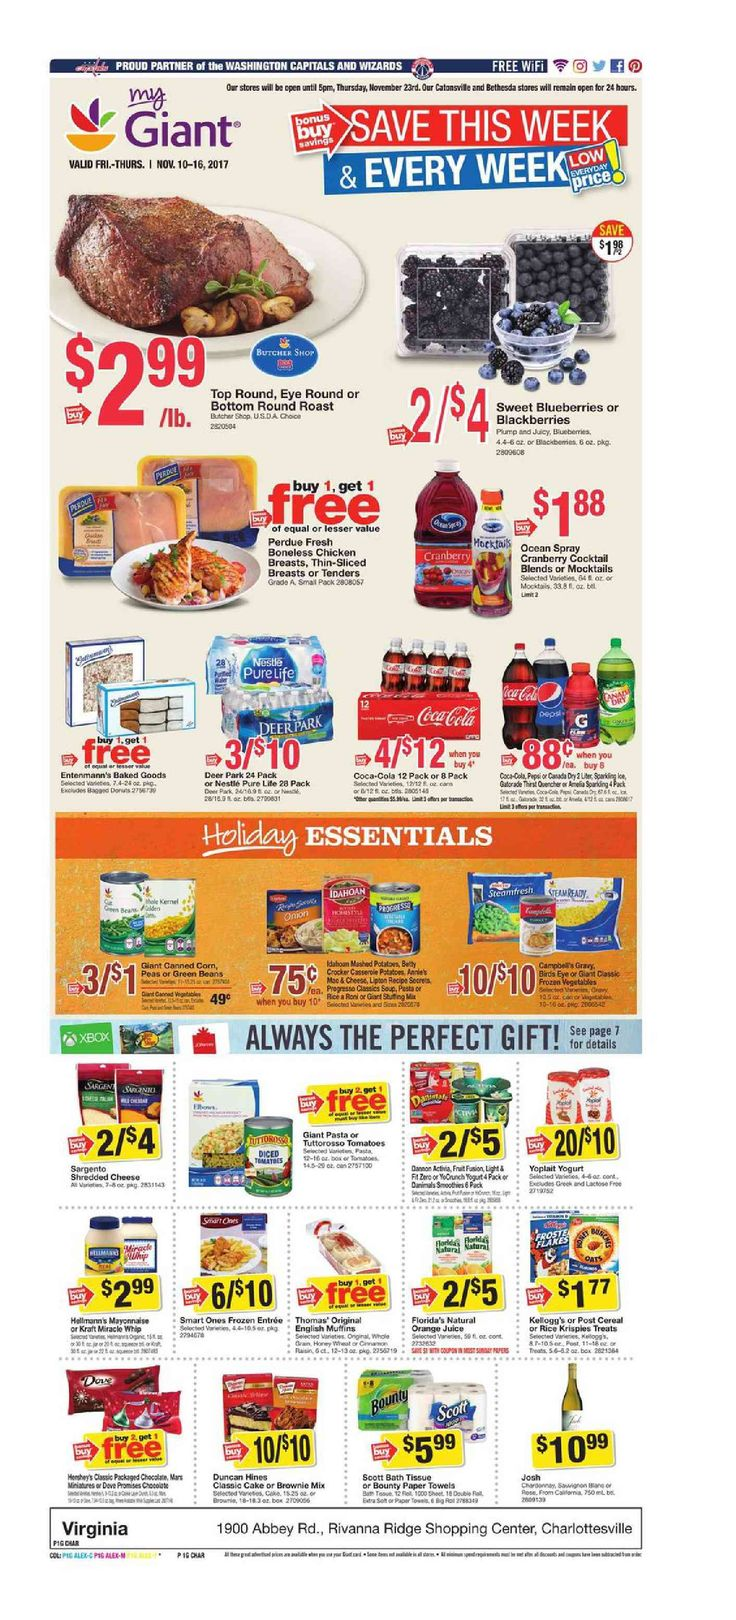 Giant Food Weekly Ad November 10 - 16, 2017 - http://www.olcatalog.com/grocery/giant-food-weekly-ad.html